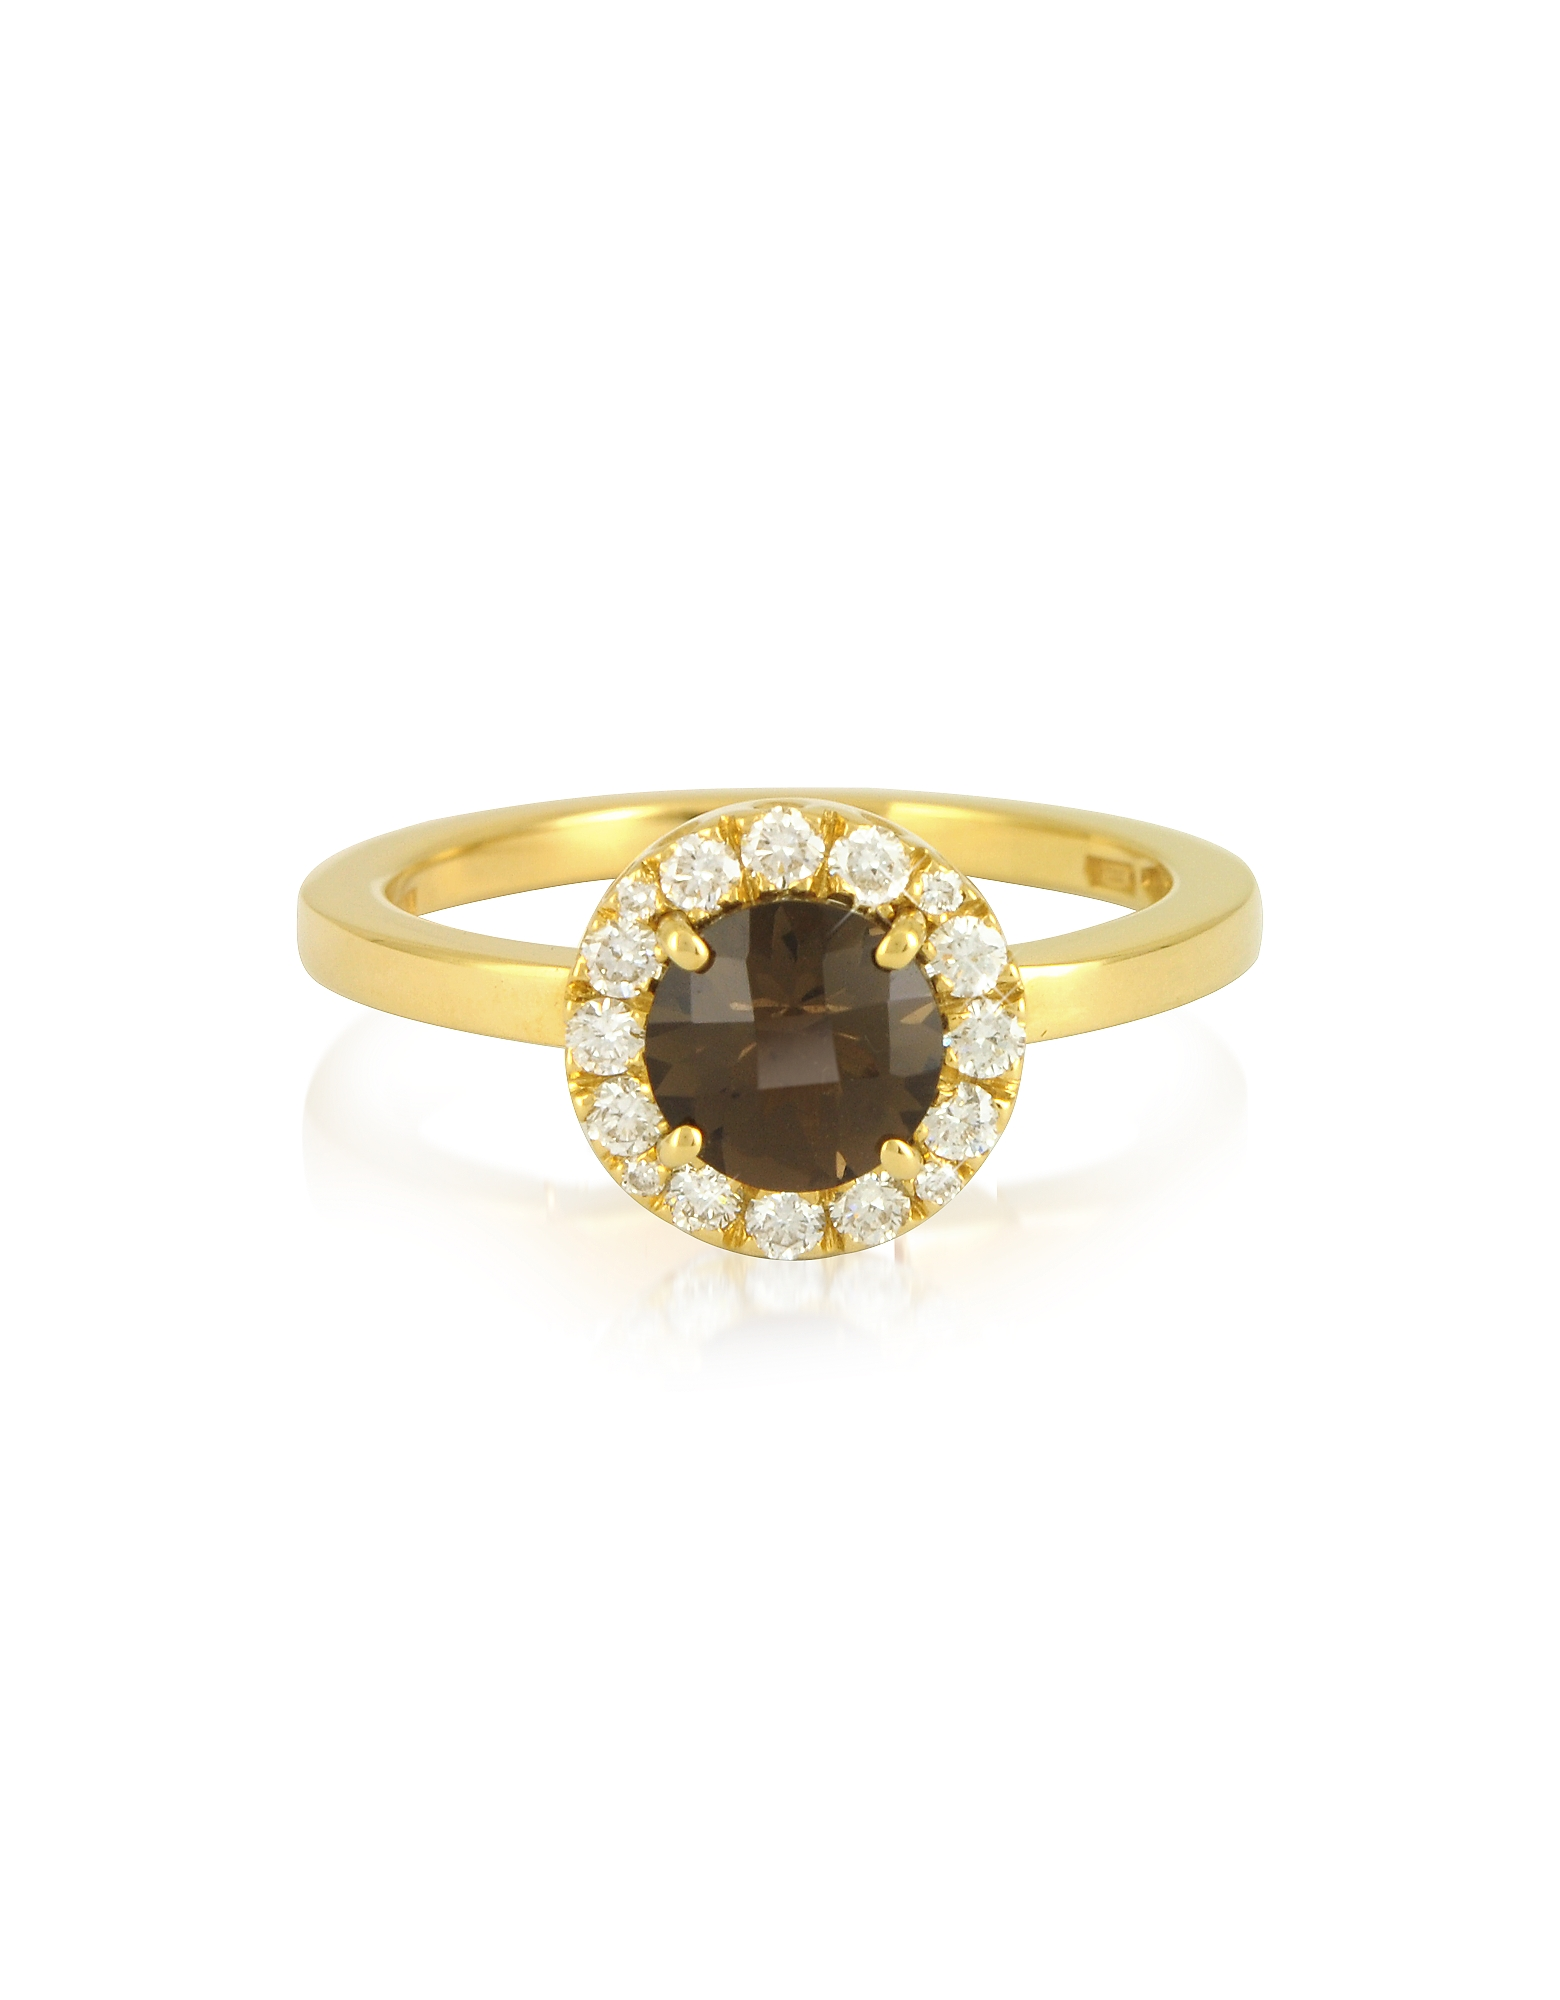 Forzieri Rings, 0.24 ct Diamond Pave 18K Gold Ring w/ Smoky Quartz